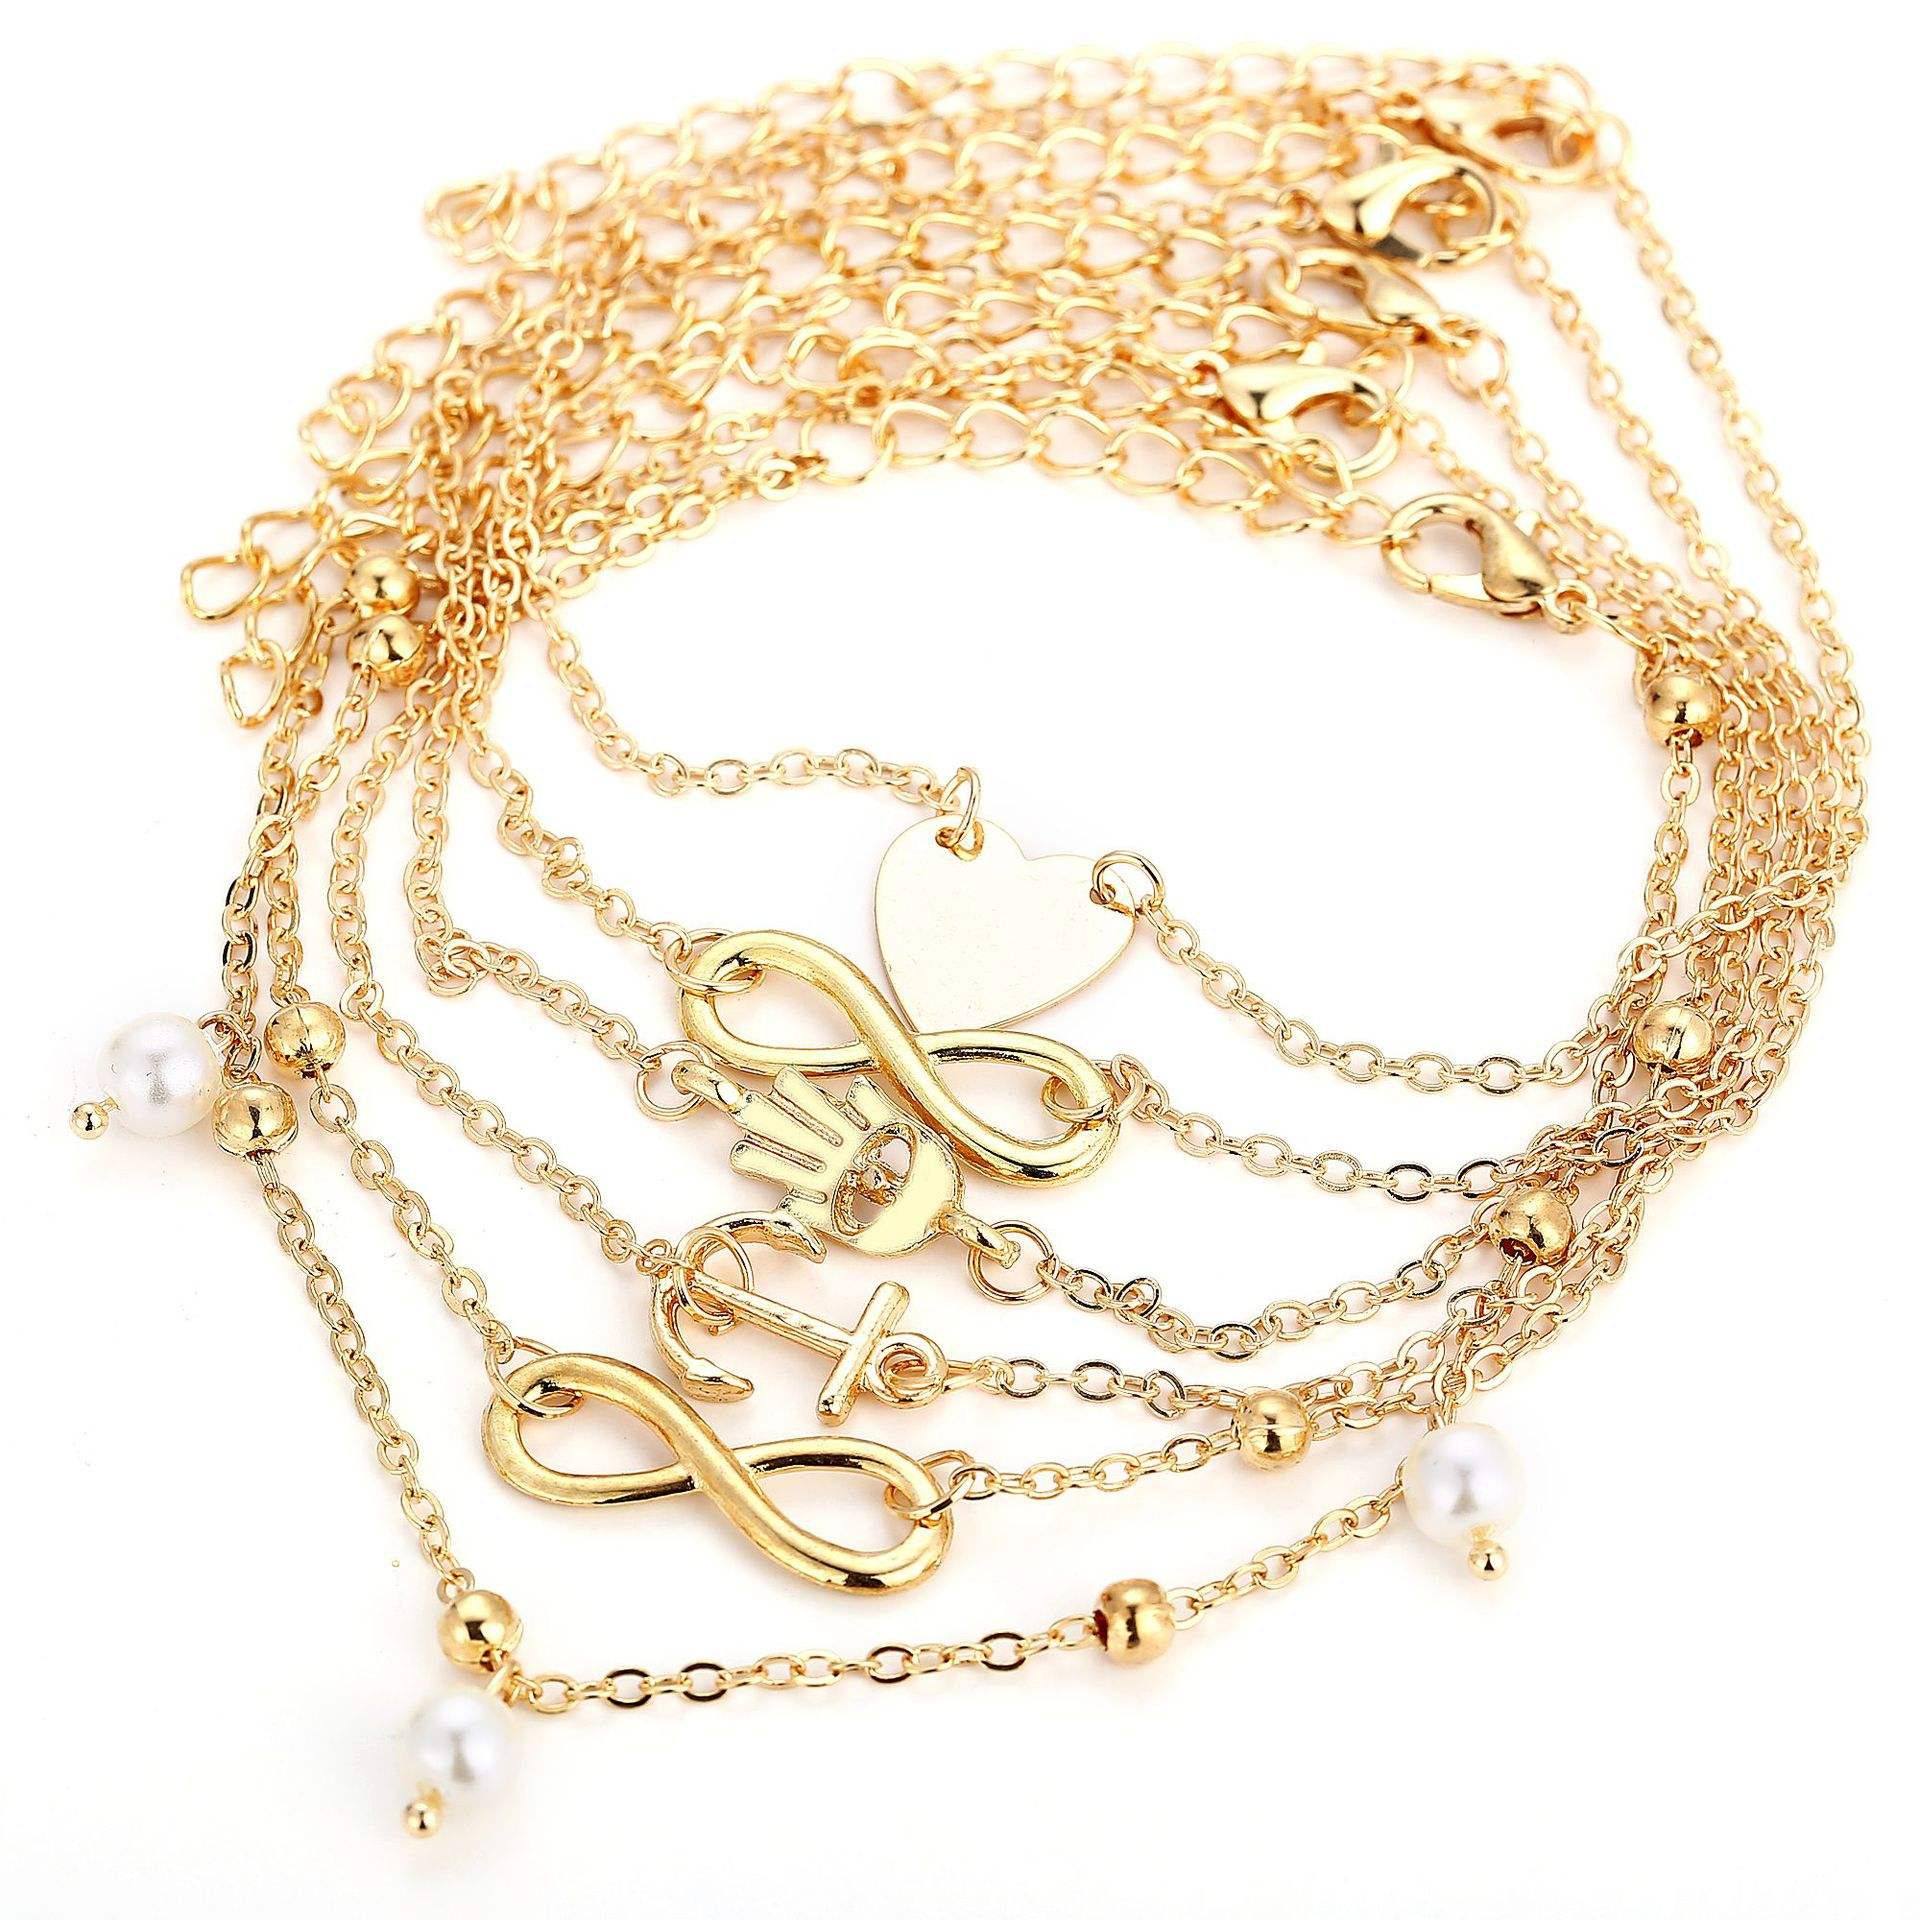 Hot selling peach heart anchor head pearl alloy anklet jewelry 5 pcs/sets mix and match foot chain